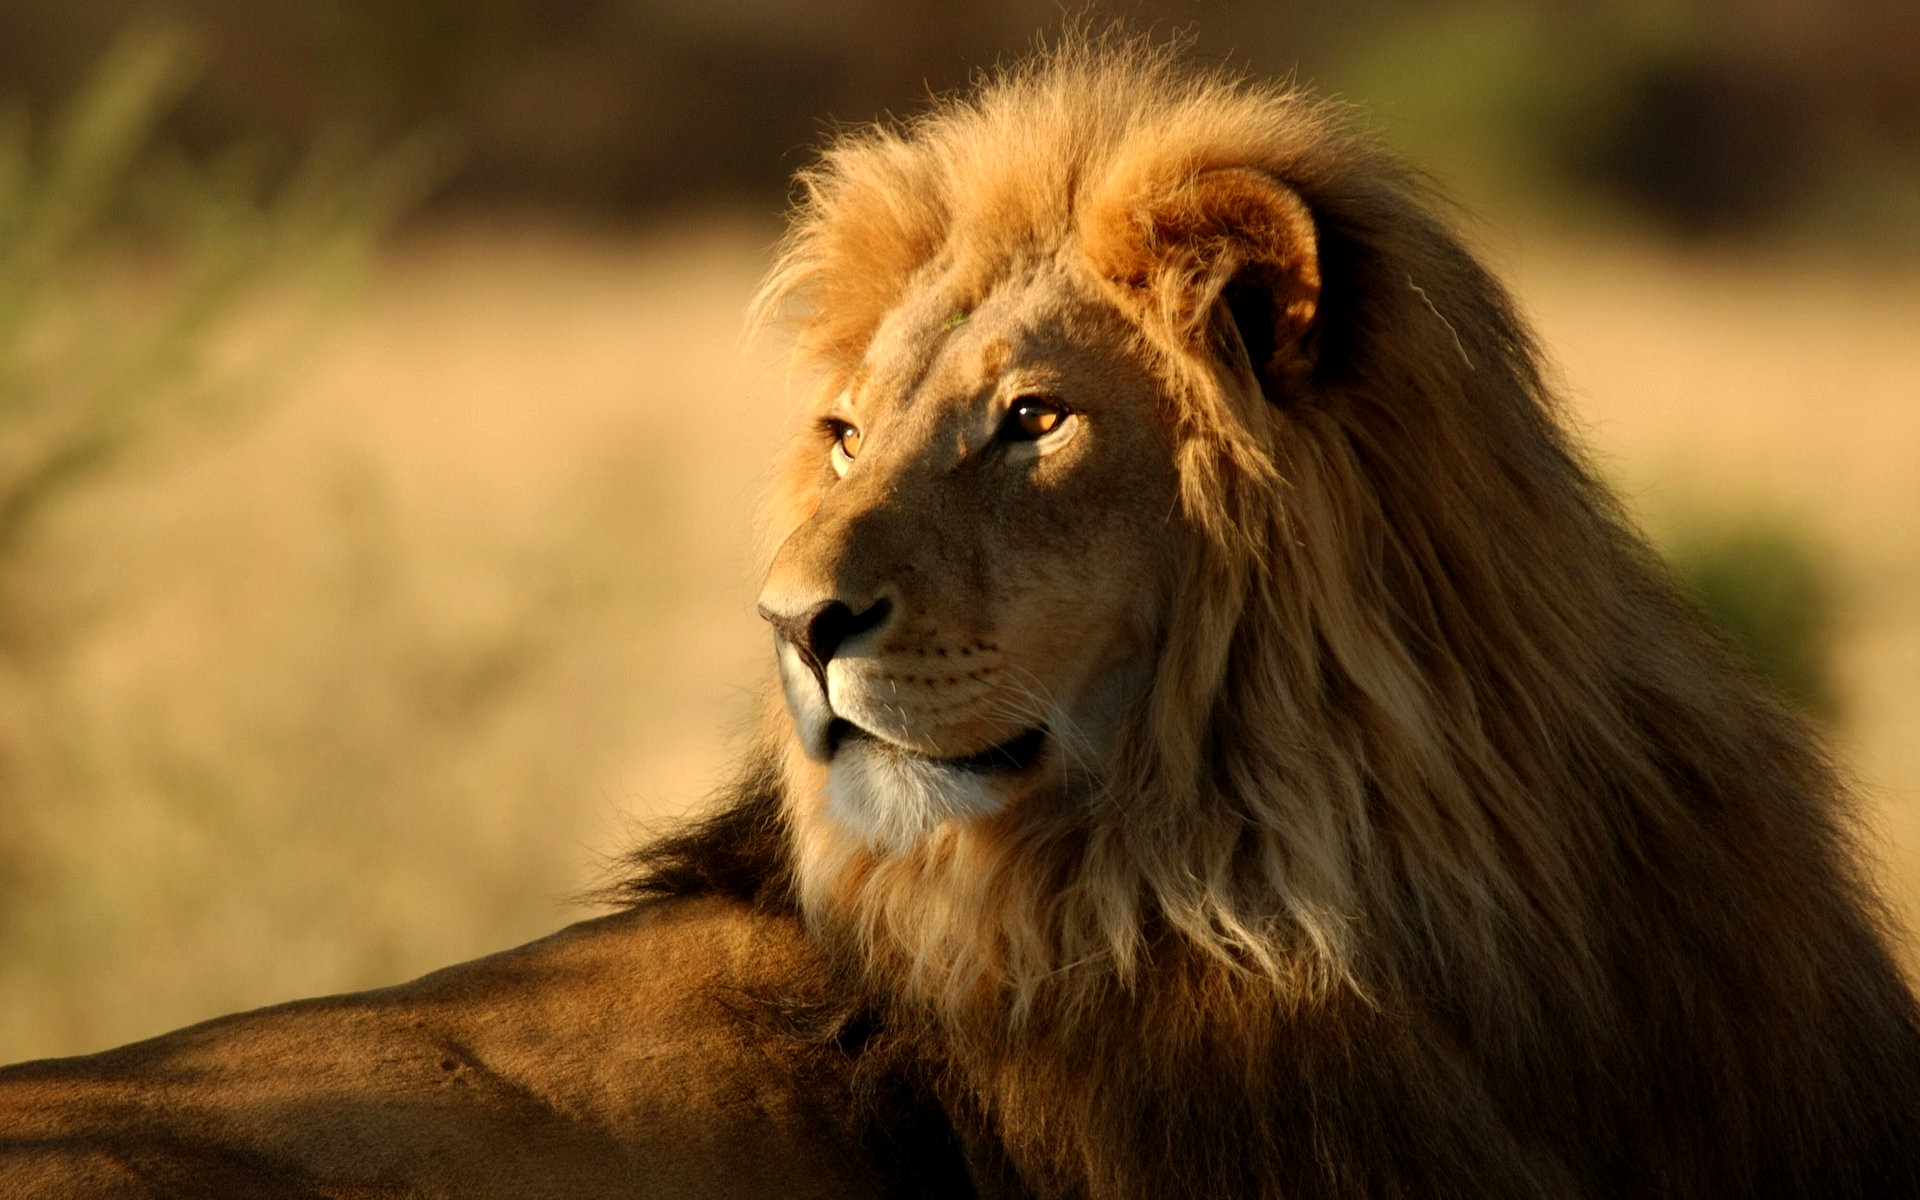 Lion Wallpaper Widescreen HD